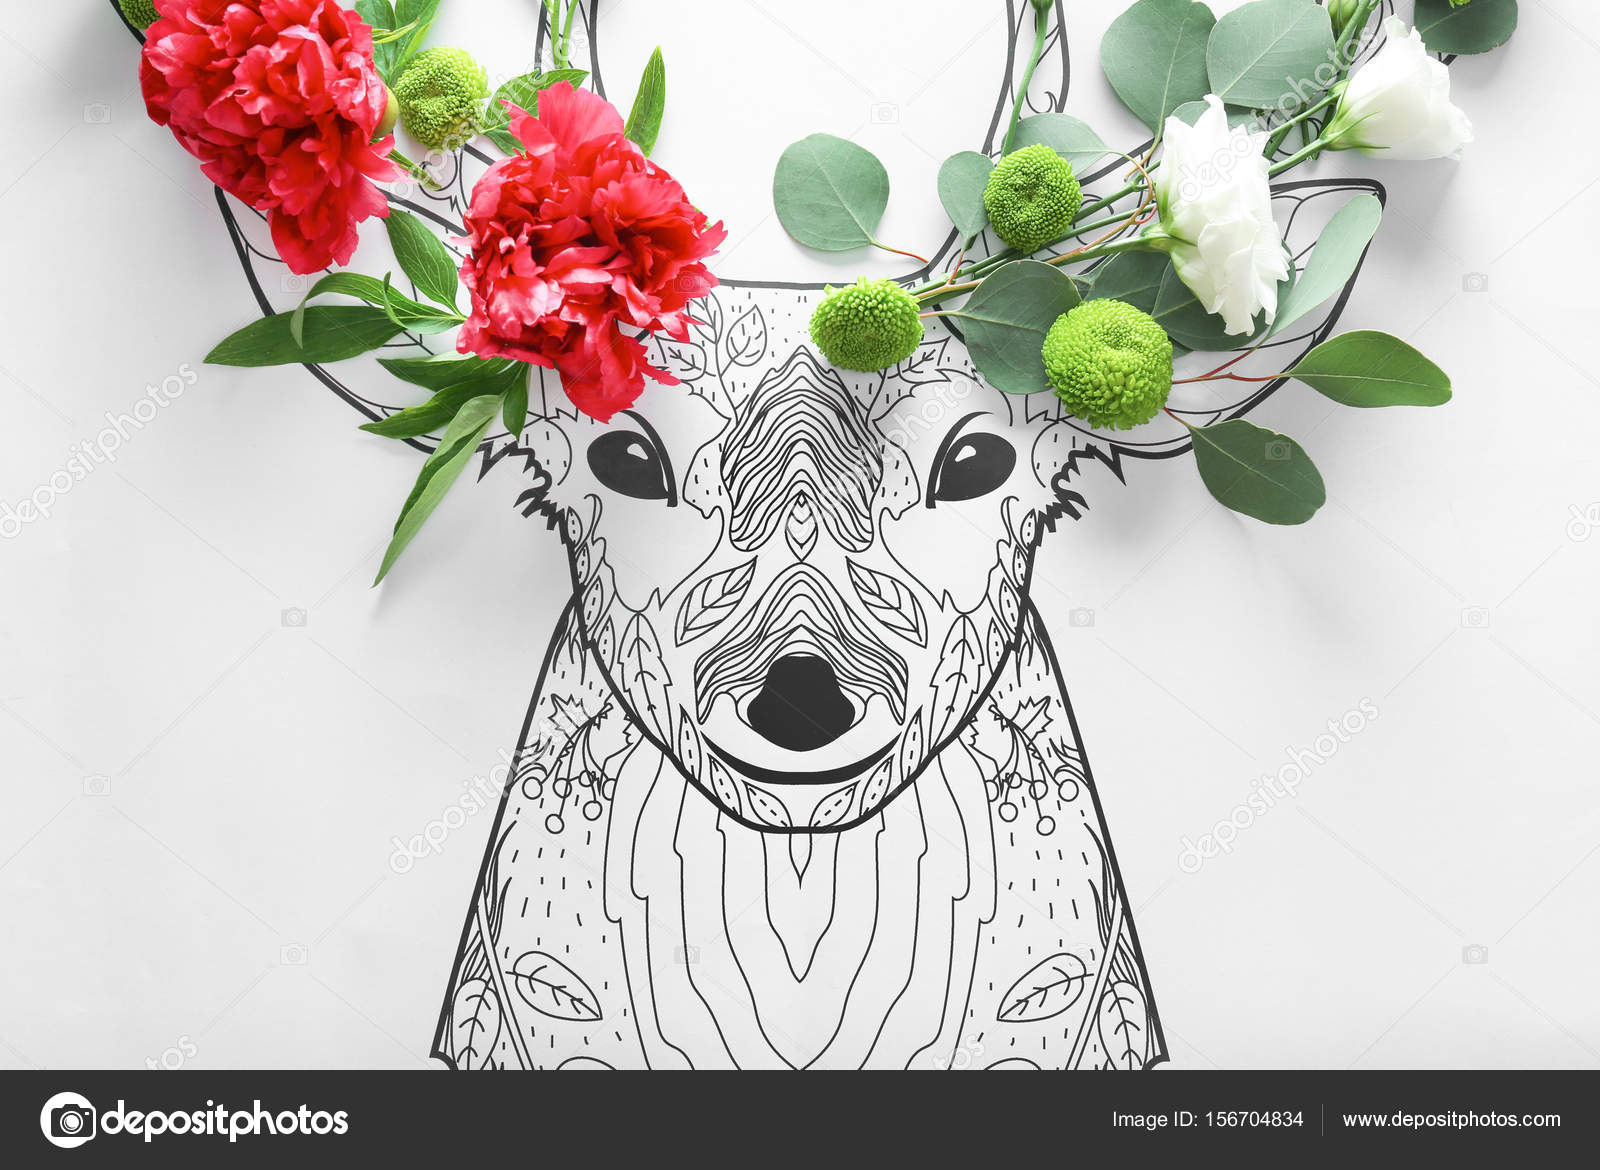 Composition of different beautiful flowers stock photo composition of different beautiful flowers and drawn deer on paper creativity concept photo by belchonock izmirmasajfo